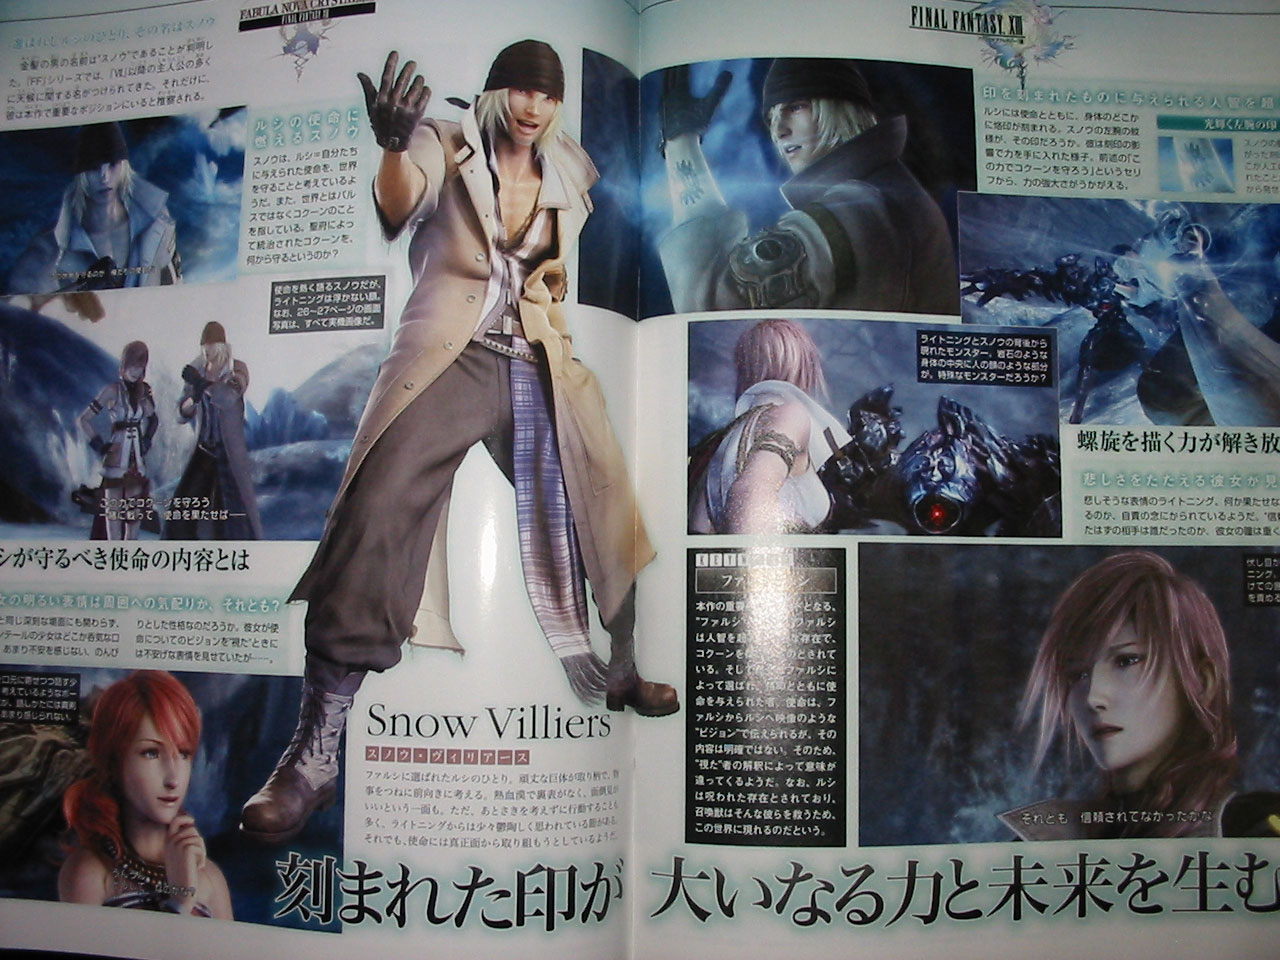 final-fantasy-xiii-famitsu-scan_10-22_0